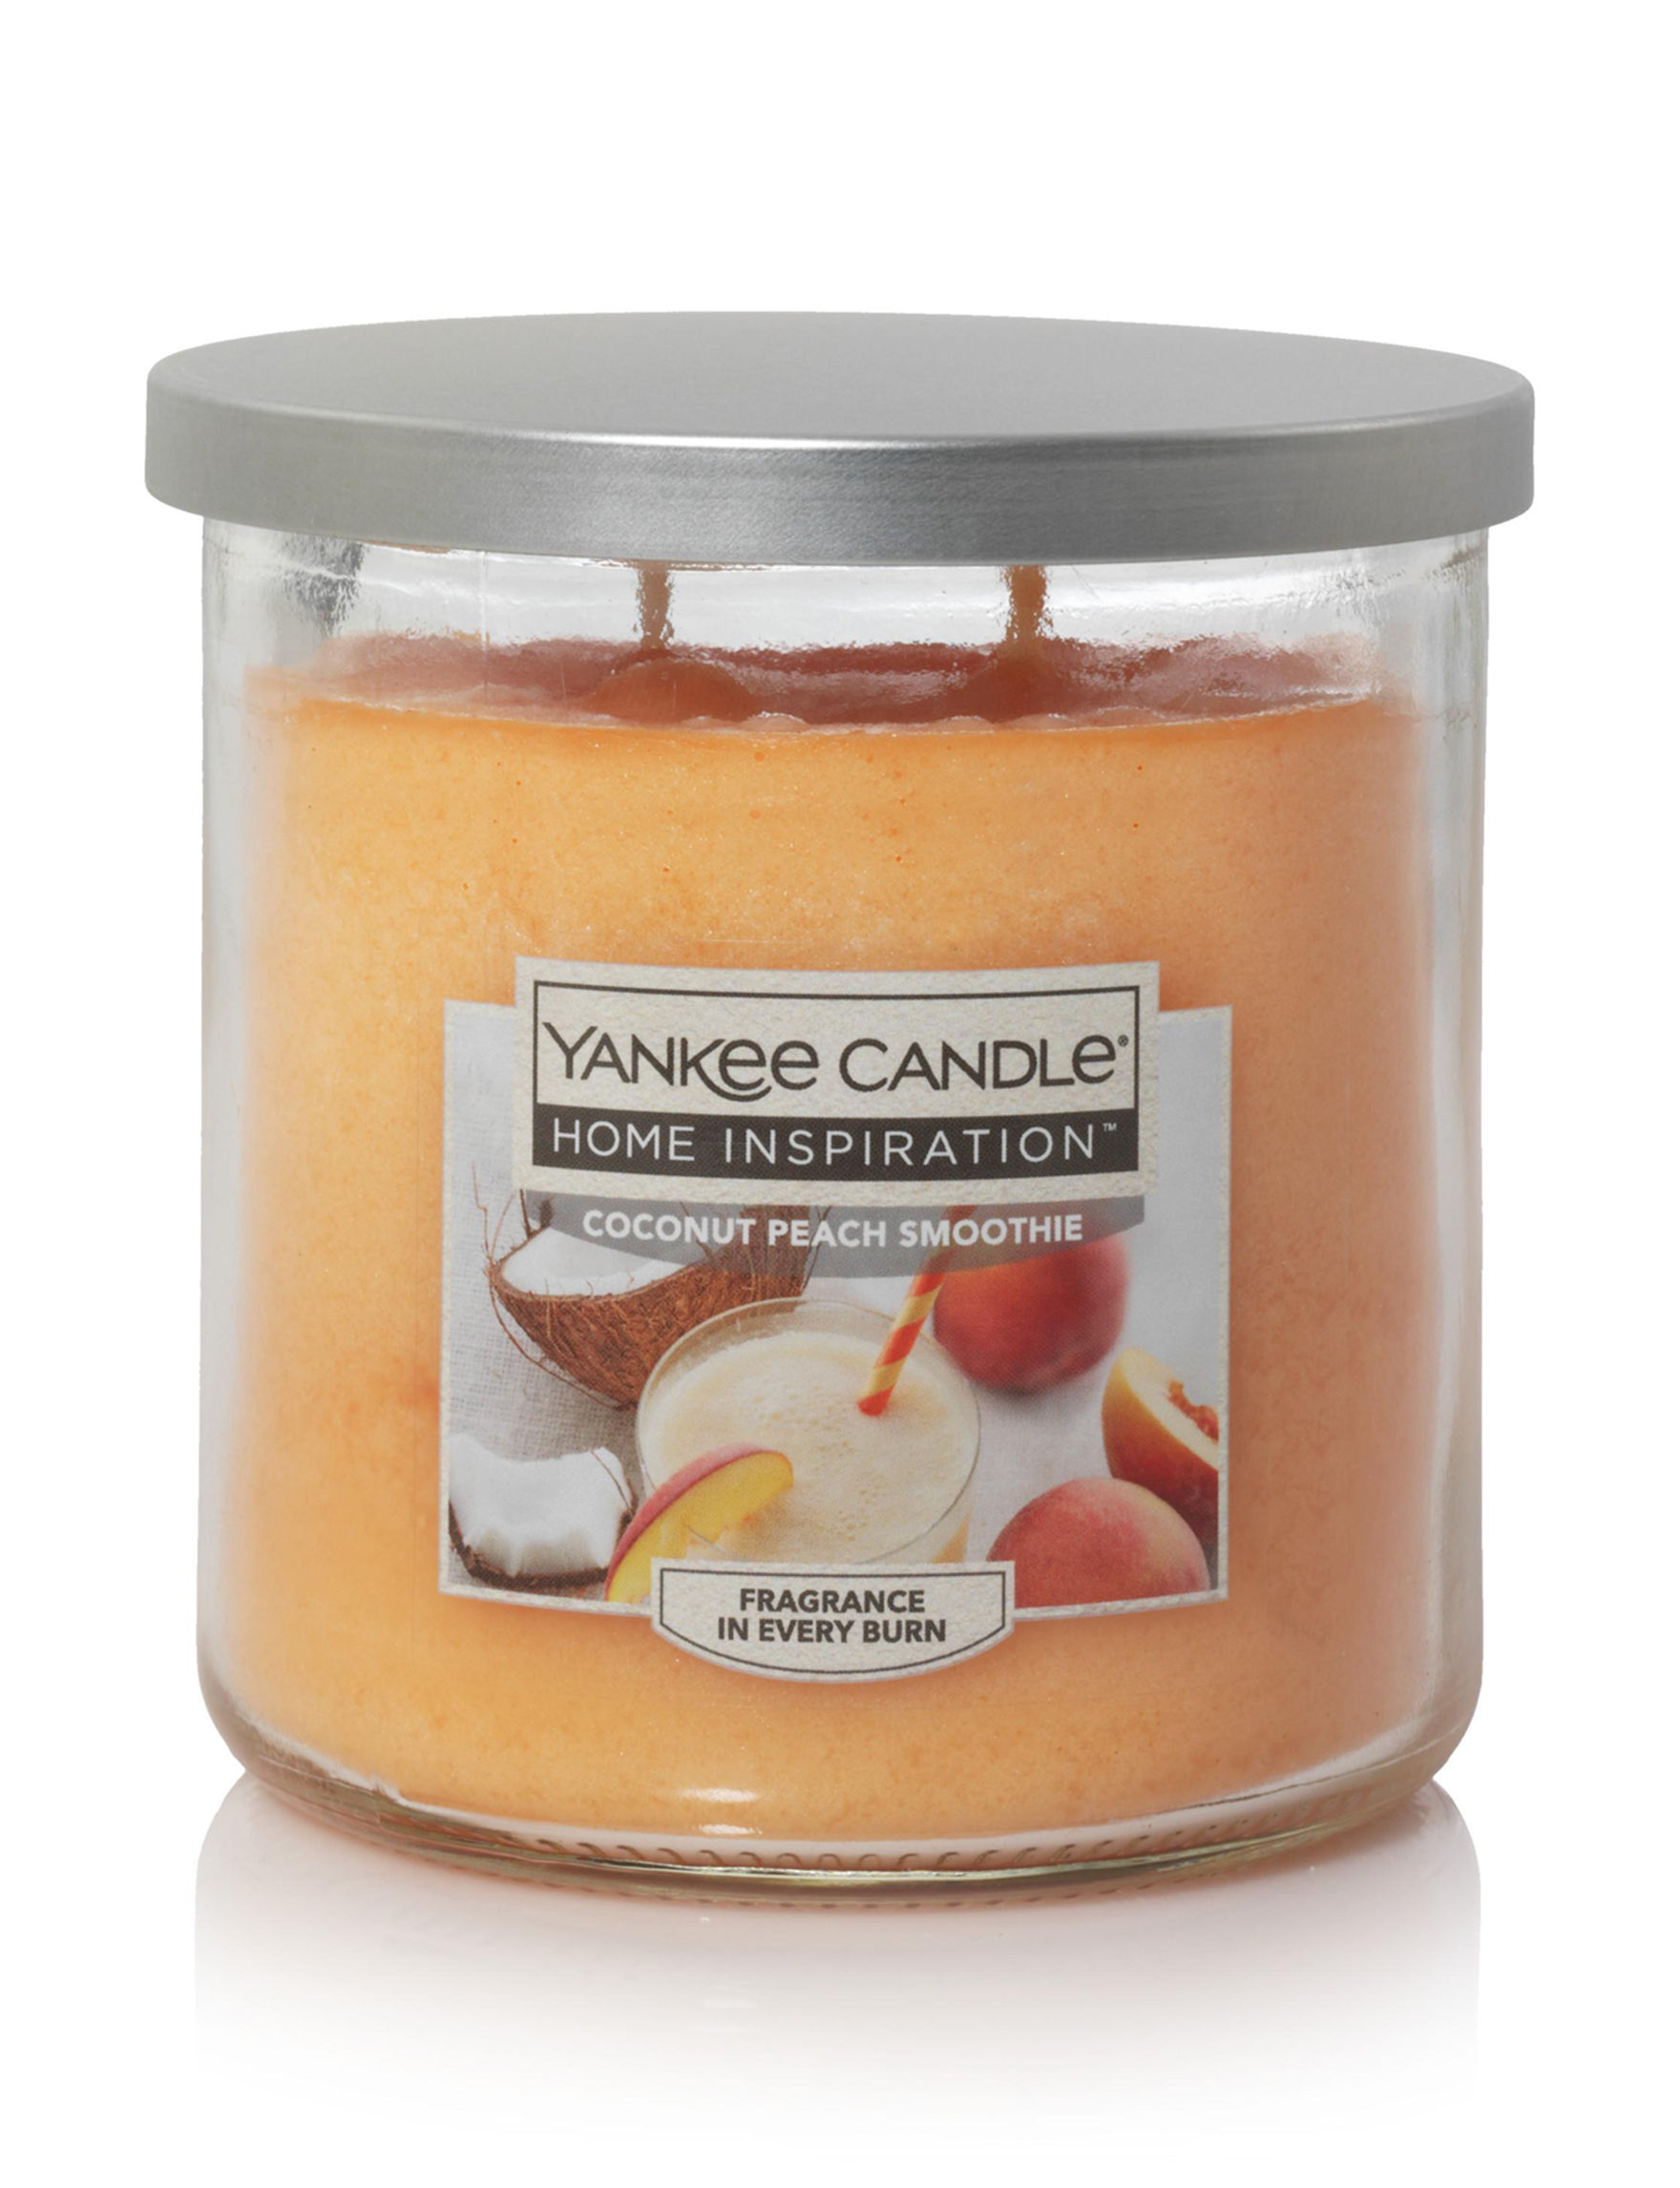 Yankee Candle Orange Candles Candles & Diffusers